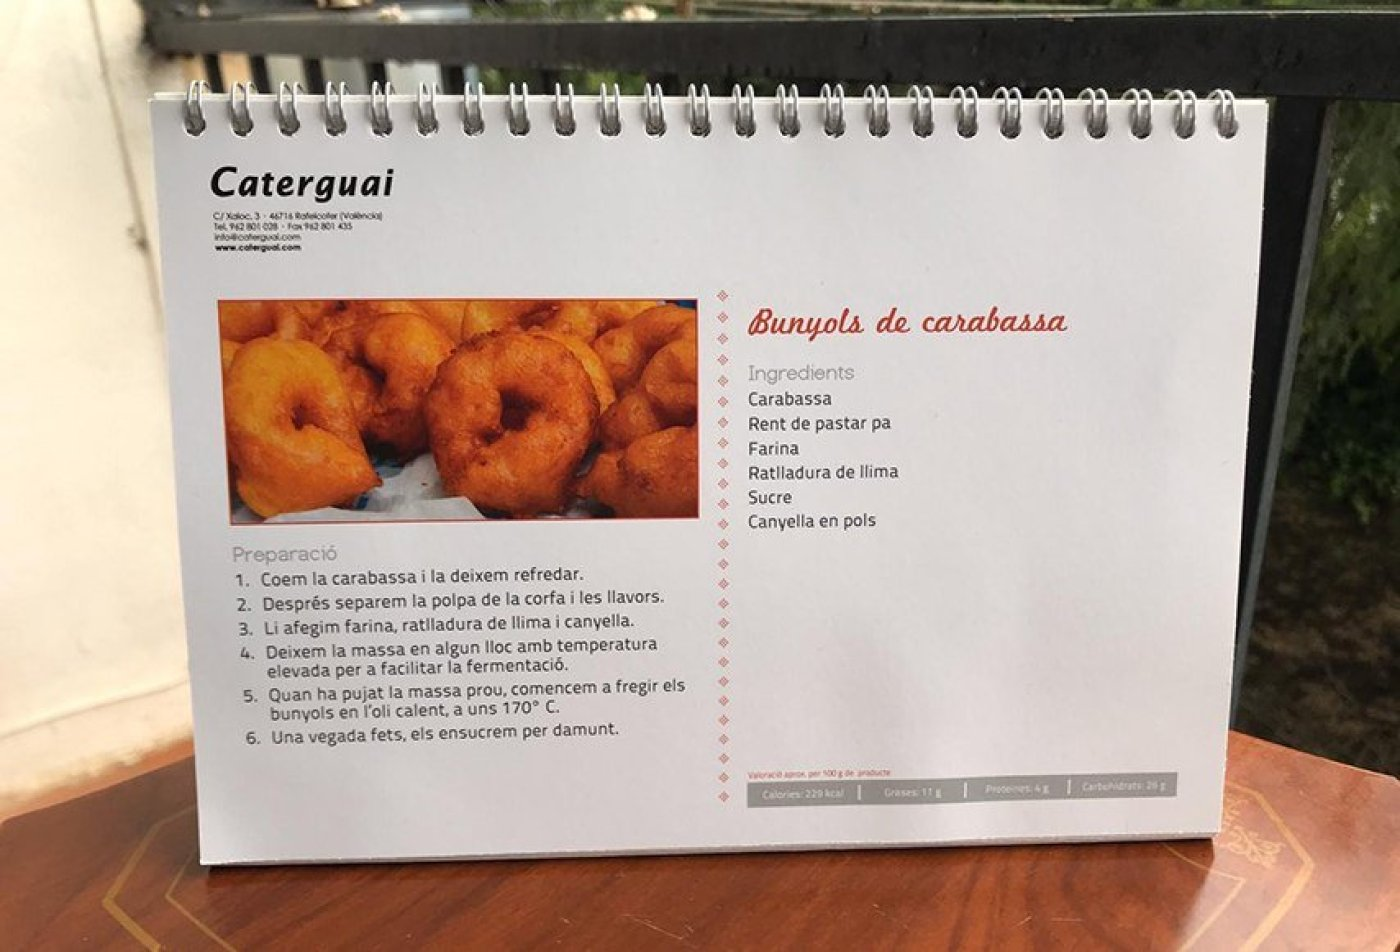 recipes for typical dishes in the region. This one is for Pumpkin Doughnuts